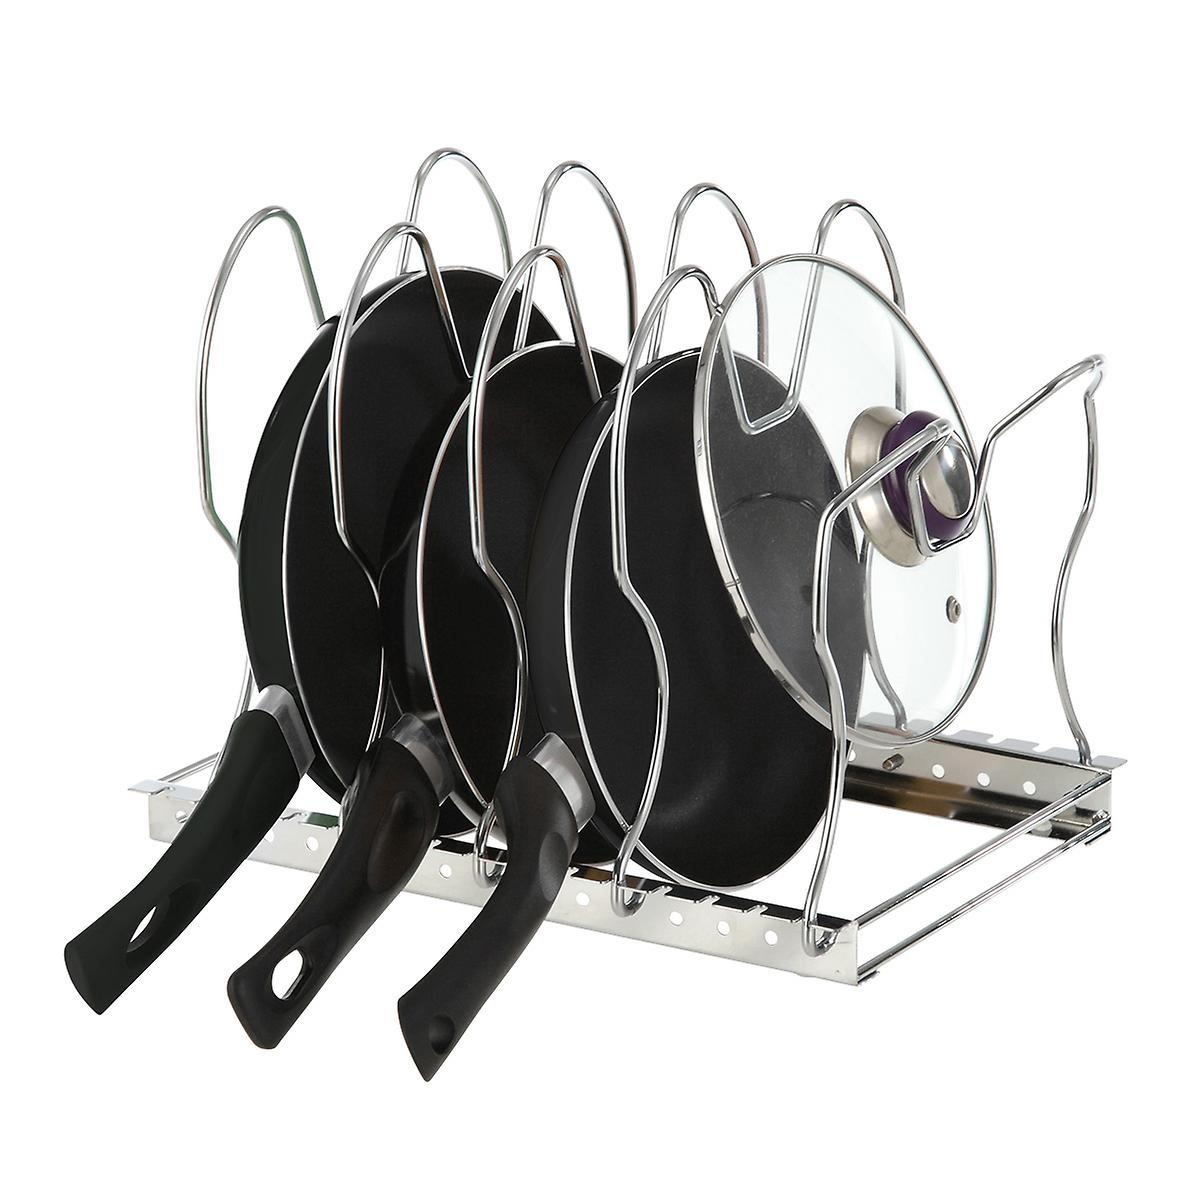 Chrome Cookware Organizer